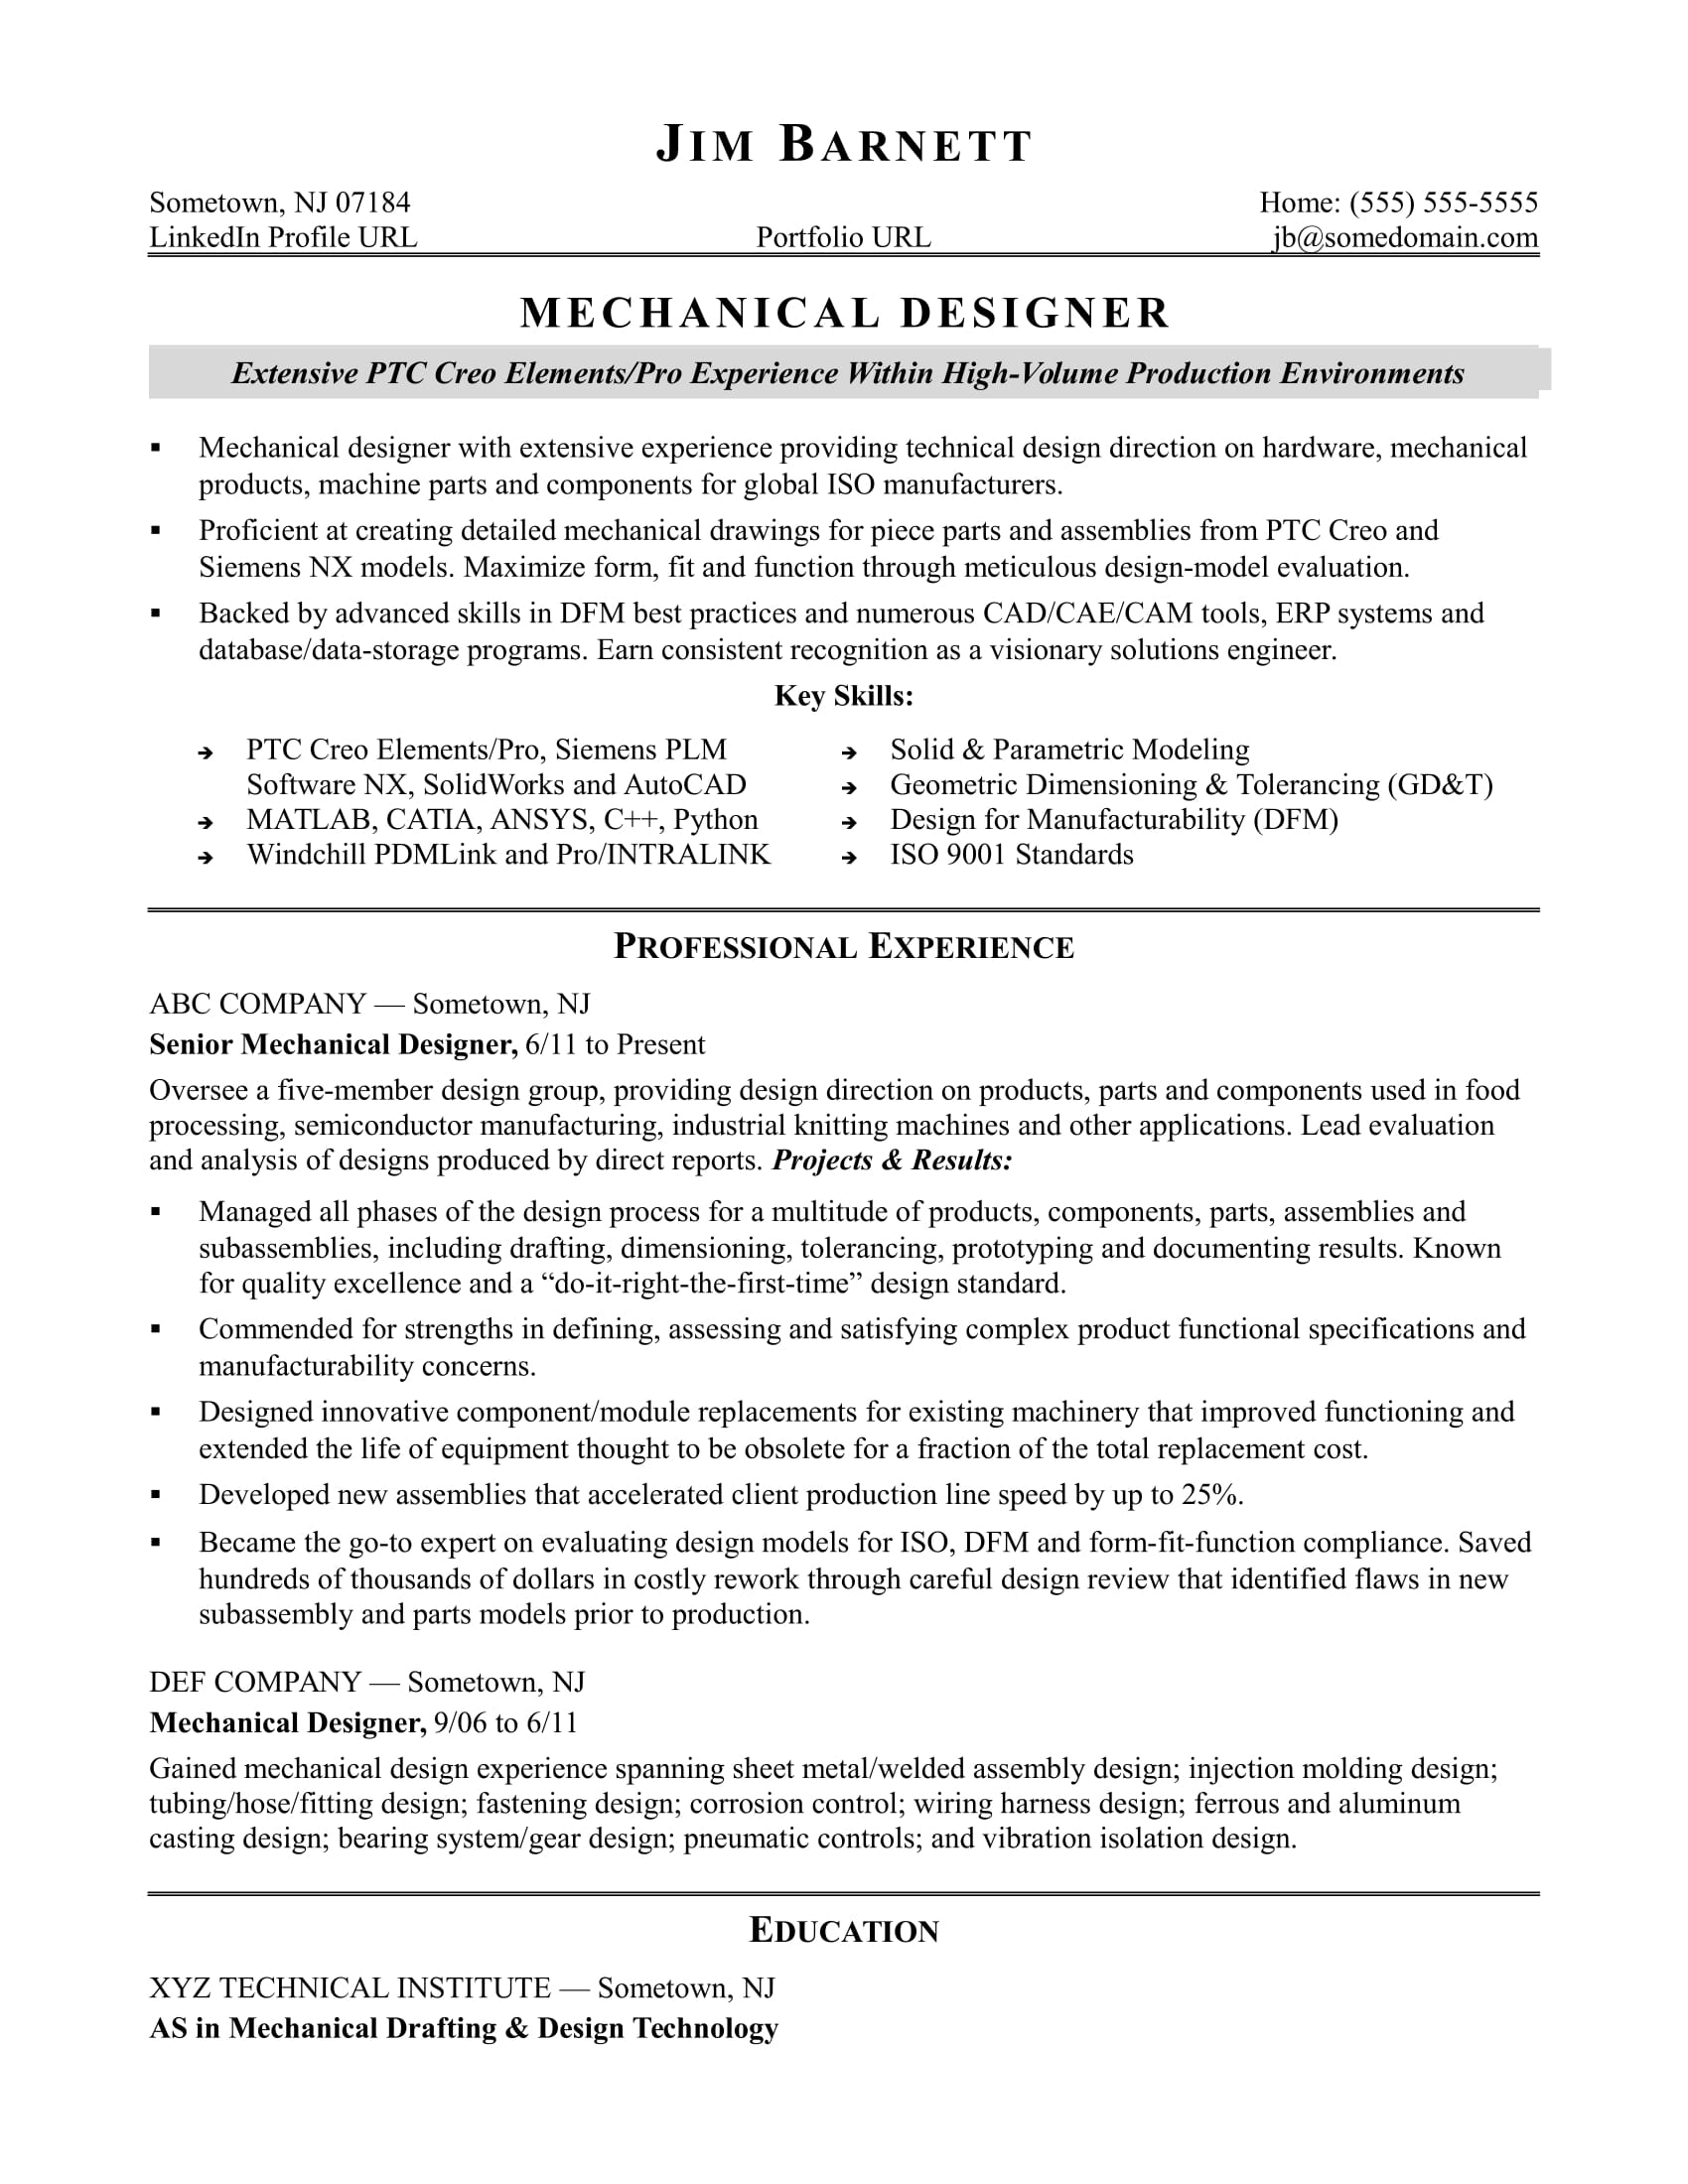 sample resume for an experienced mechanical designer monster tool design engineer Resume Tool Design Engineer Resume